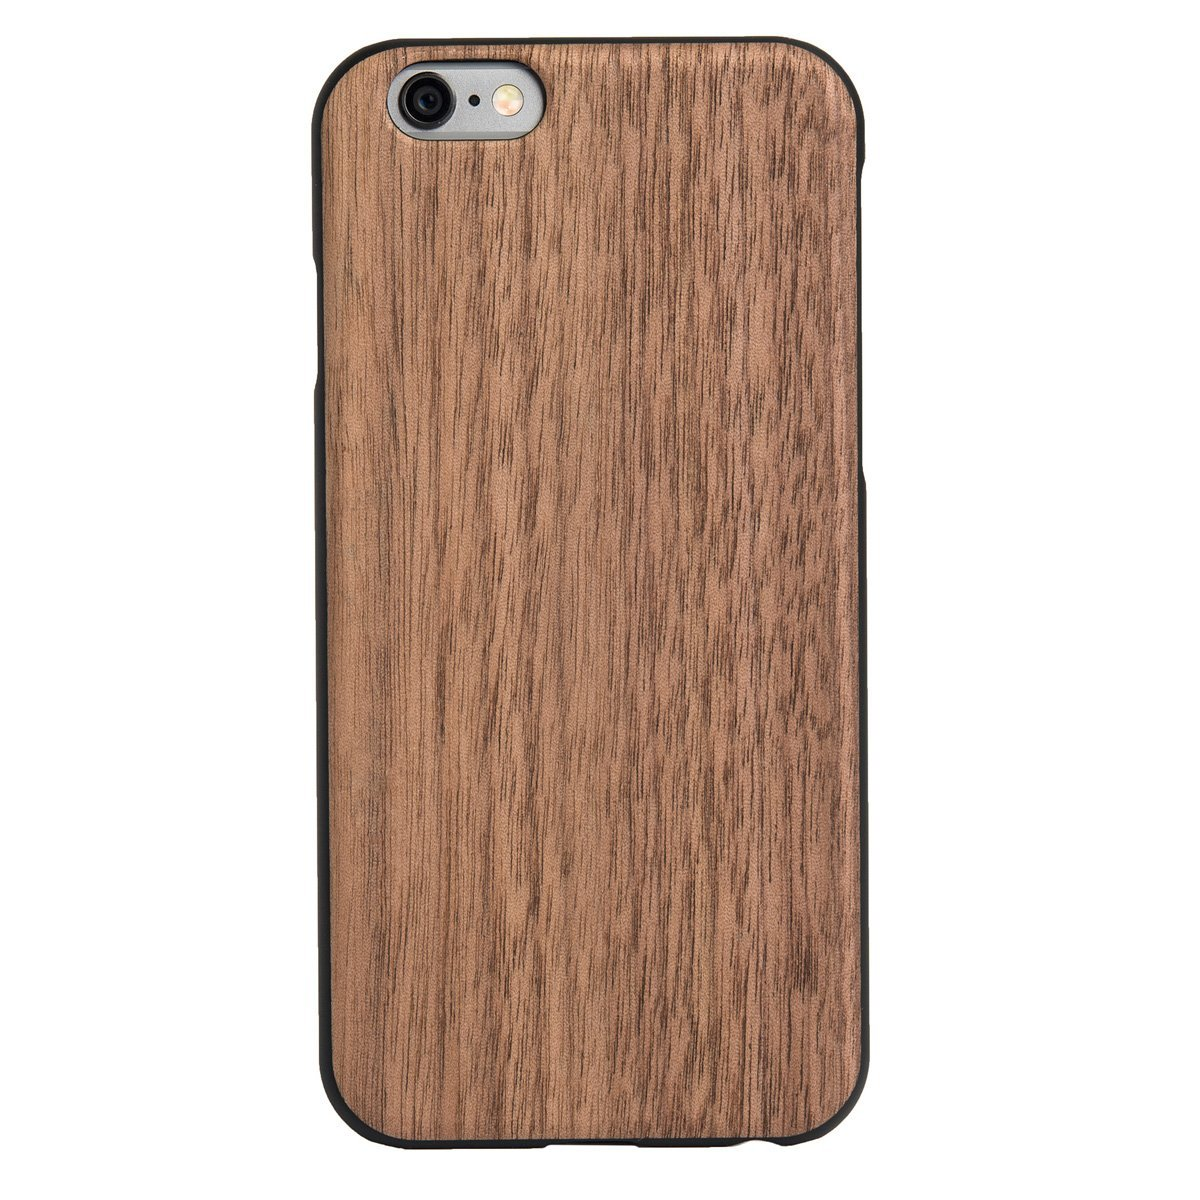 Agent18 iPhone 6 / iPhone 6S Case, - Craftsman - SlimShield